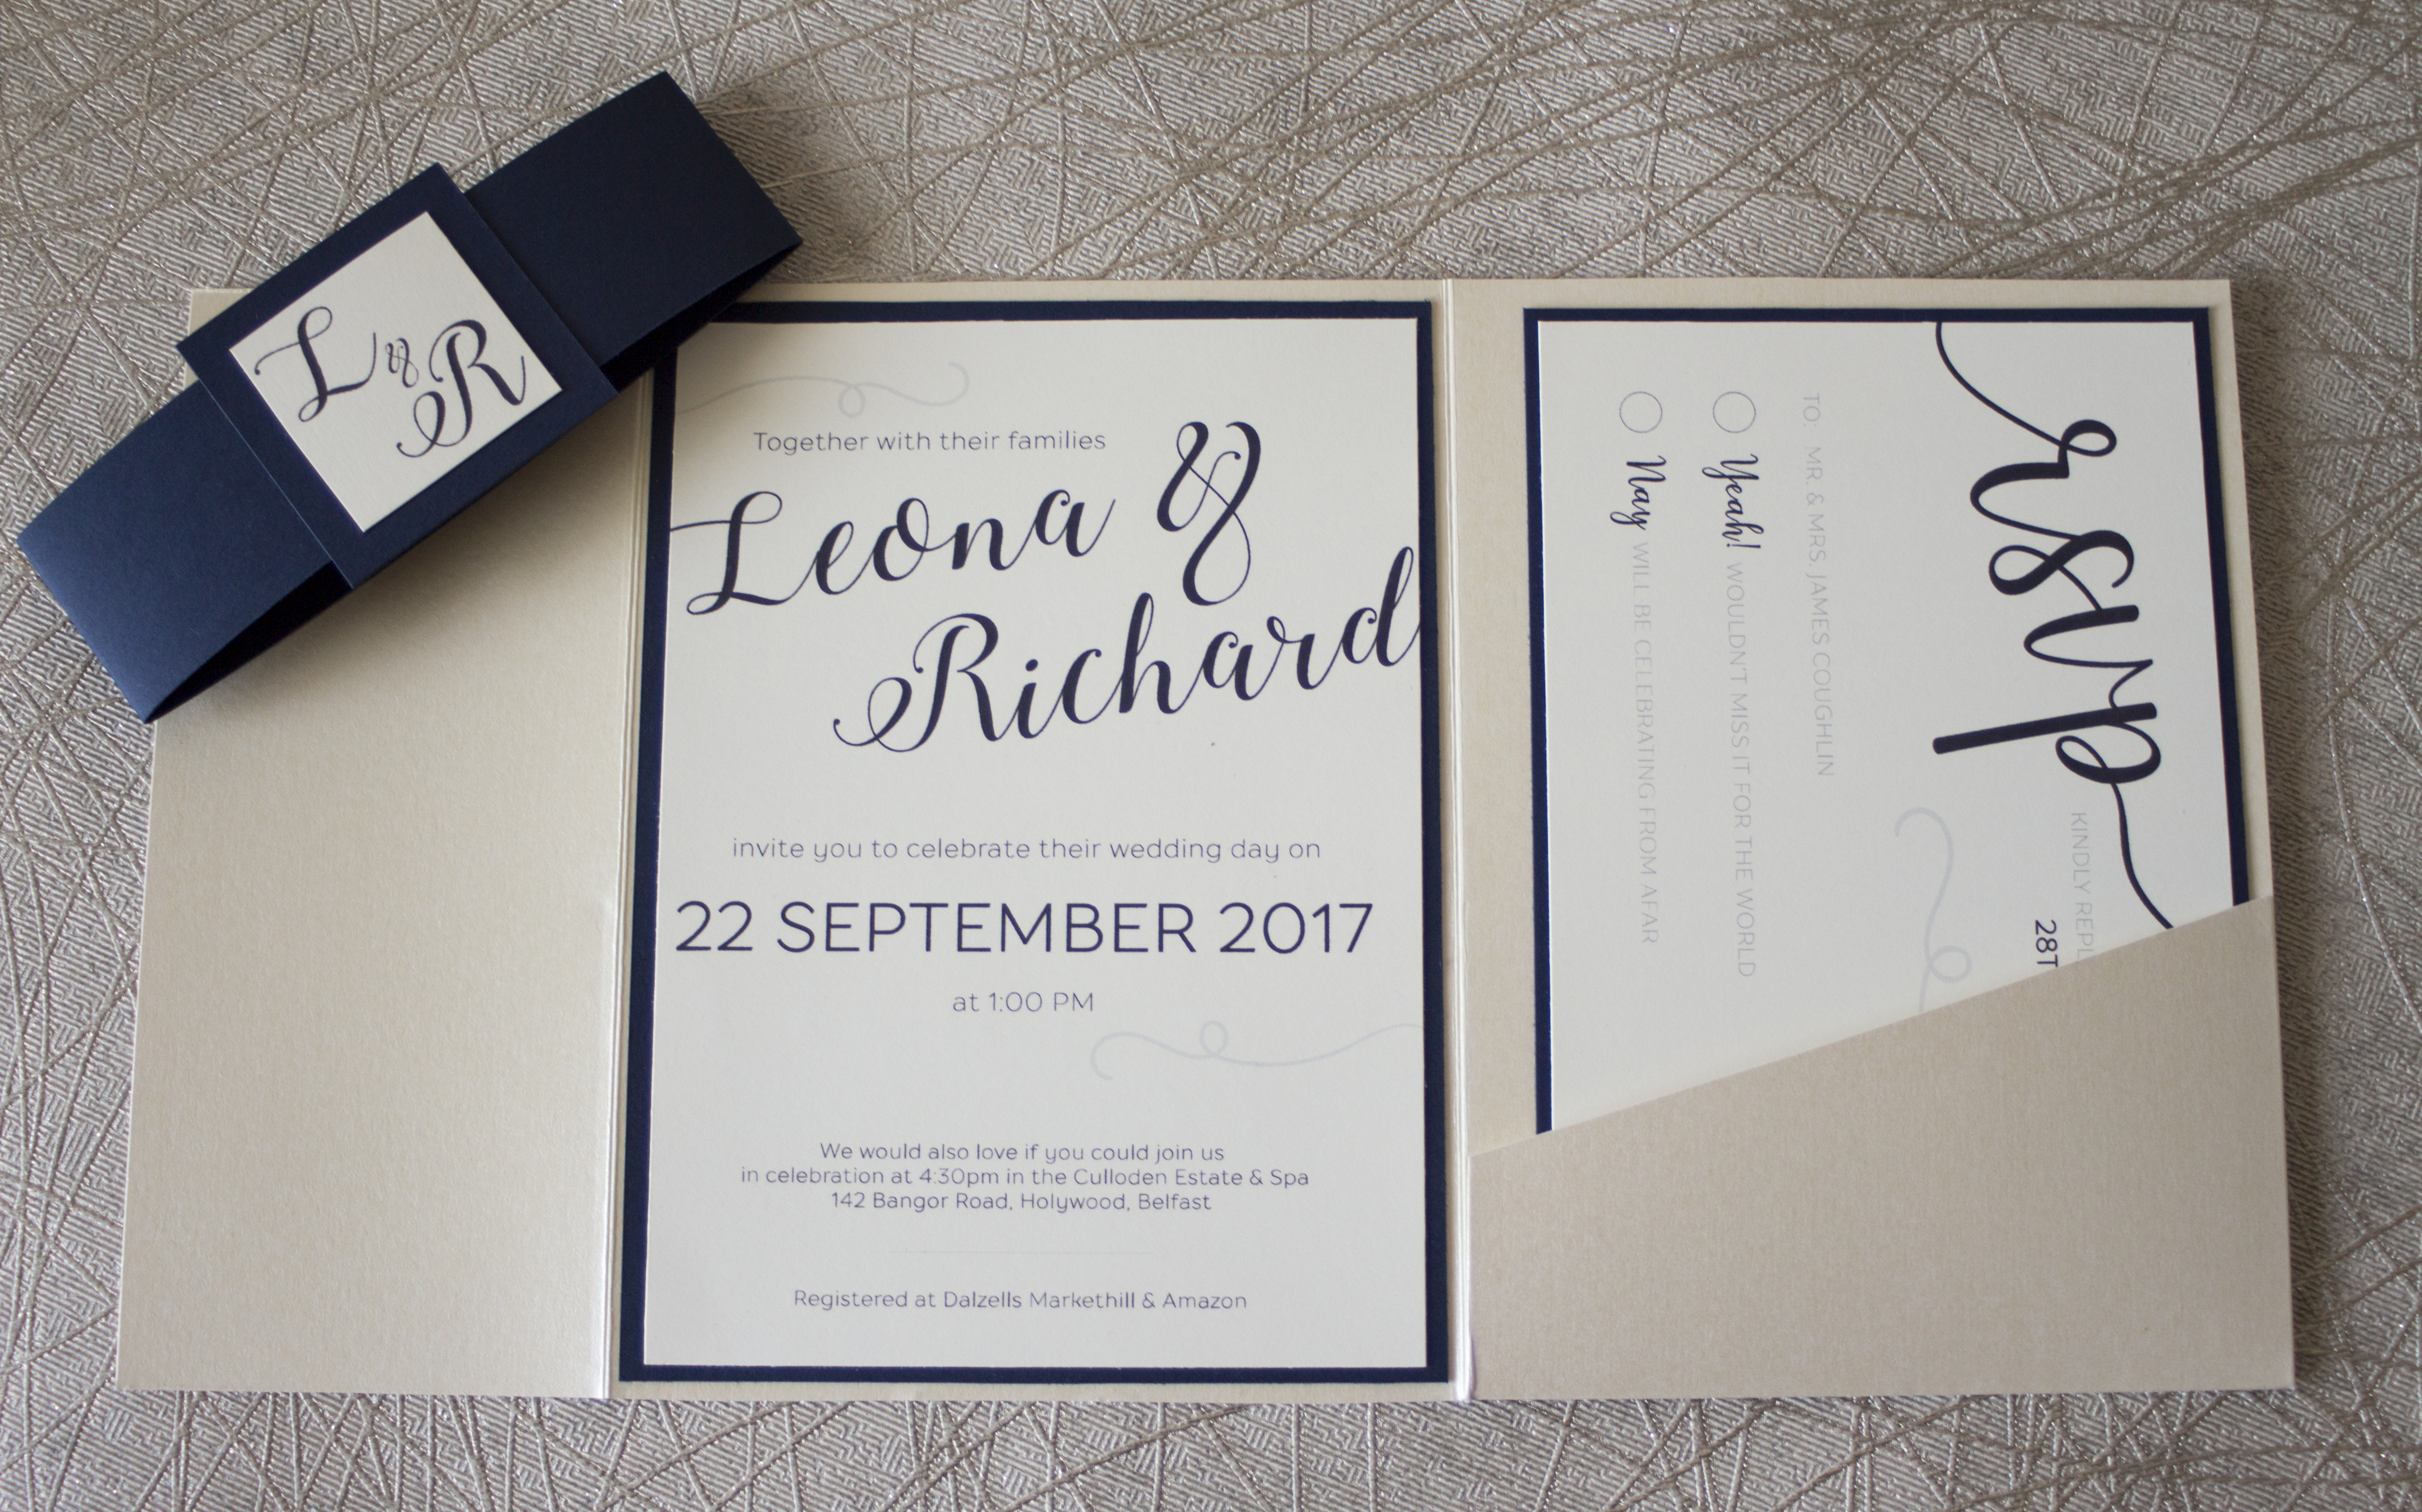 Sample wedding of Leona & Richard - main invite 2